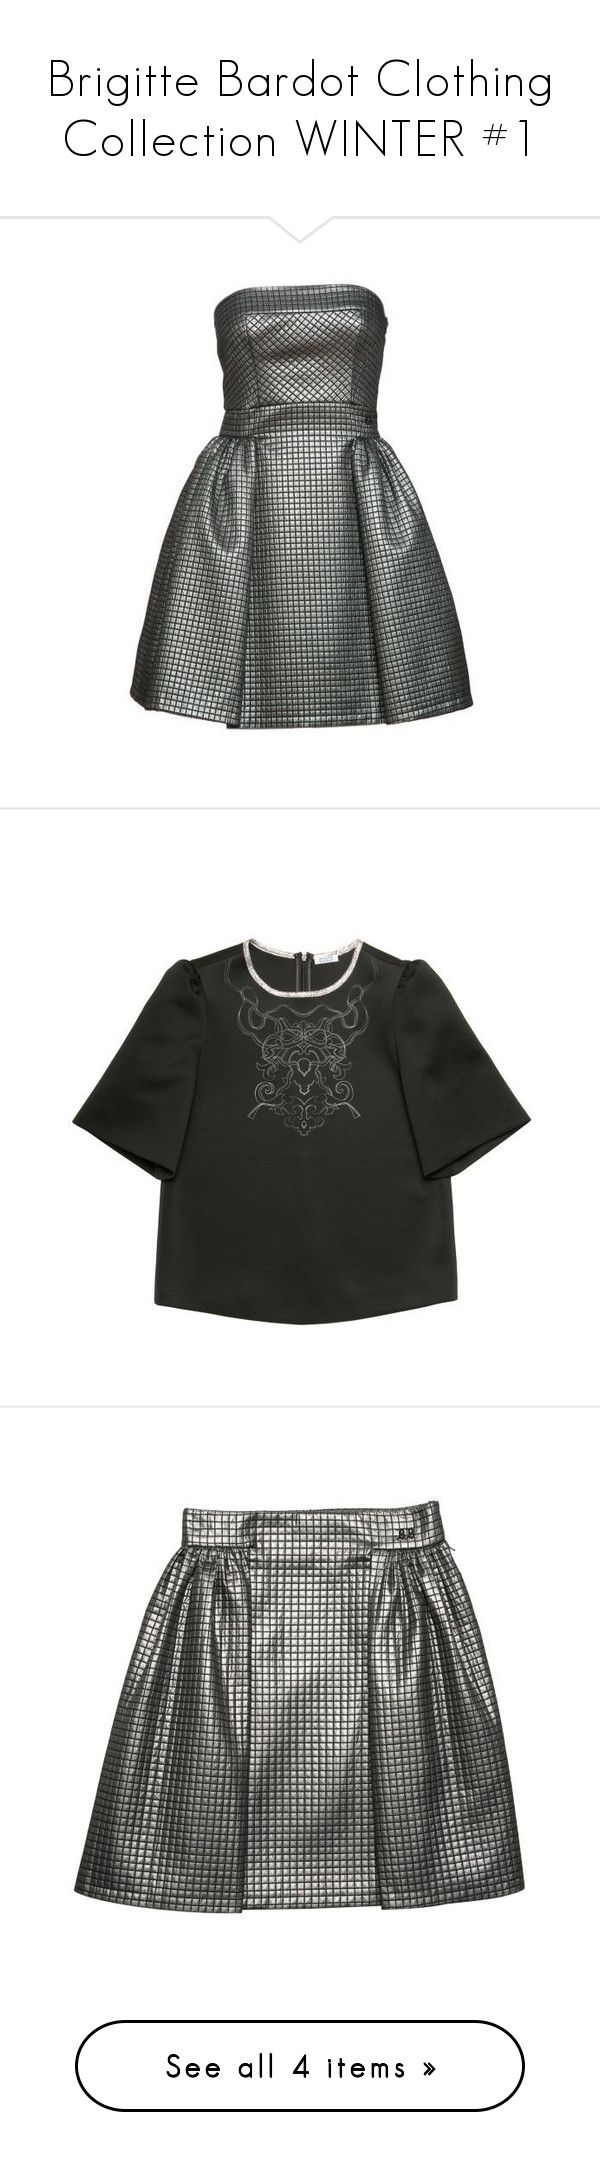 """""""Brigitte Bardot Clothing Collection WINTER #1"""" by chanco ❤ liked on Polyvore featuring dresses, skater dress, silver dresses, silver skater dress, tops, embroidery top, green top, embroidered top, skirts and silver skater skirt"""